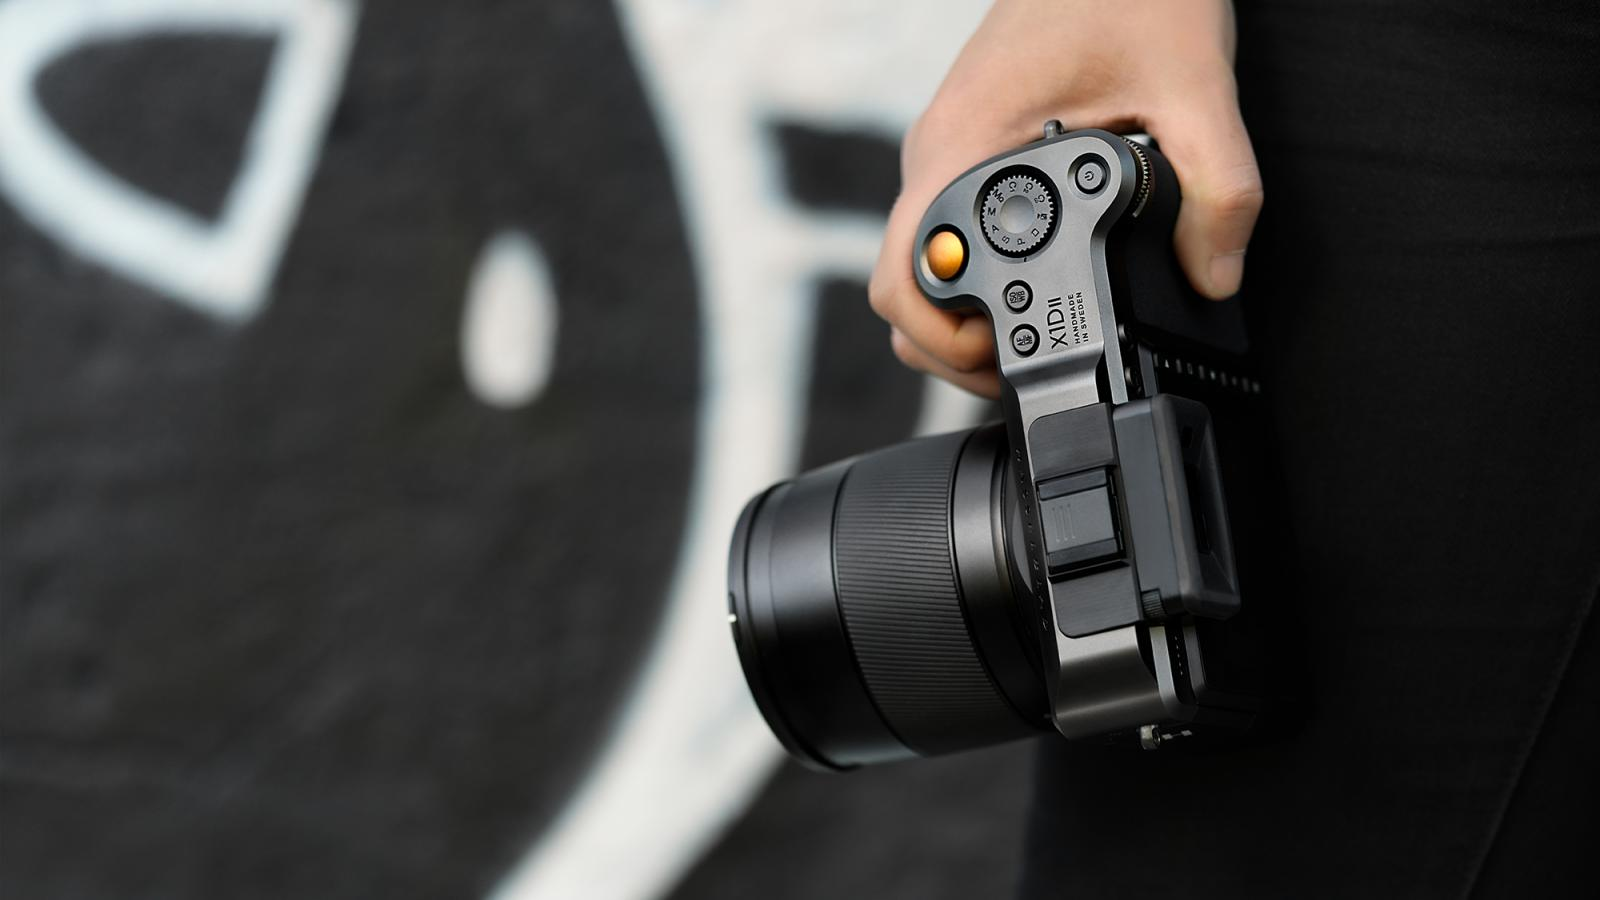 Hasselblad introducing its new X1D II, CFV II 50C, 907X Body and more